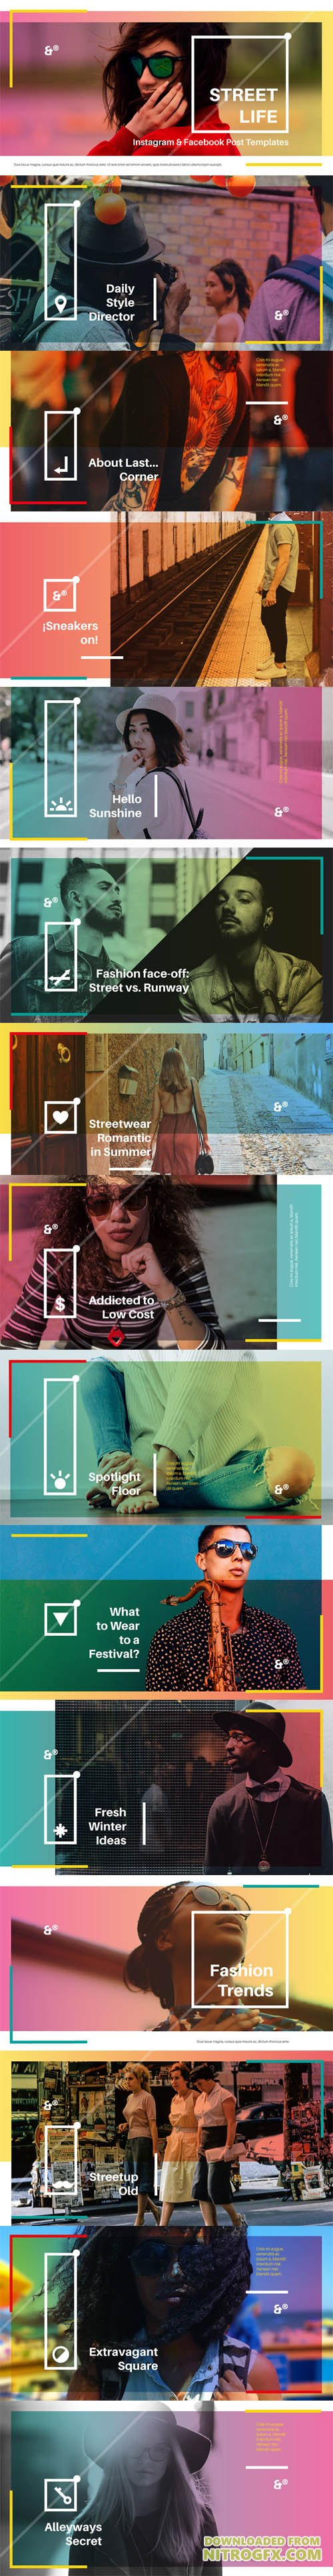 15 Street Life Social Media Templates [PSD/AI/Sketch]